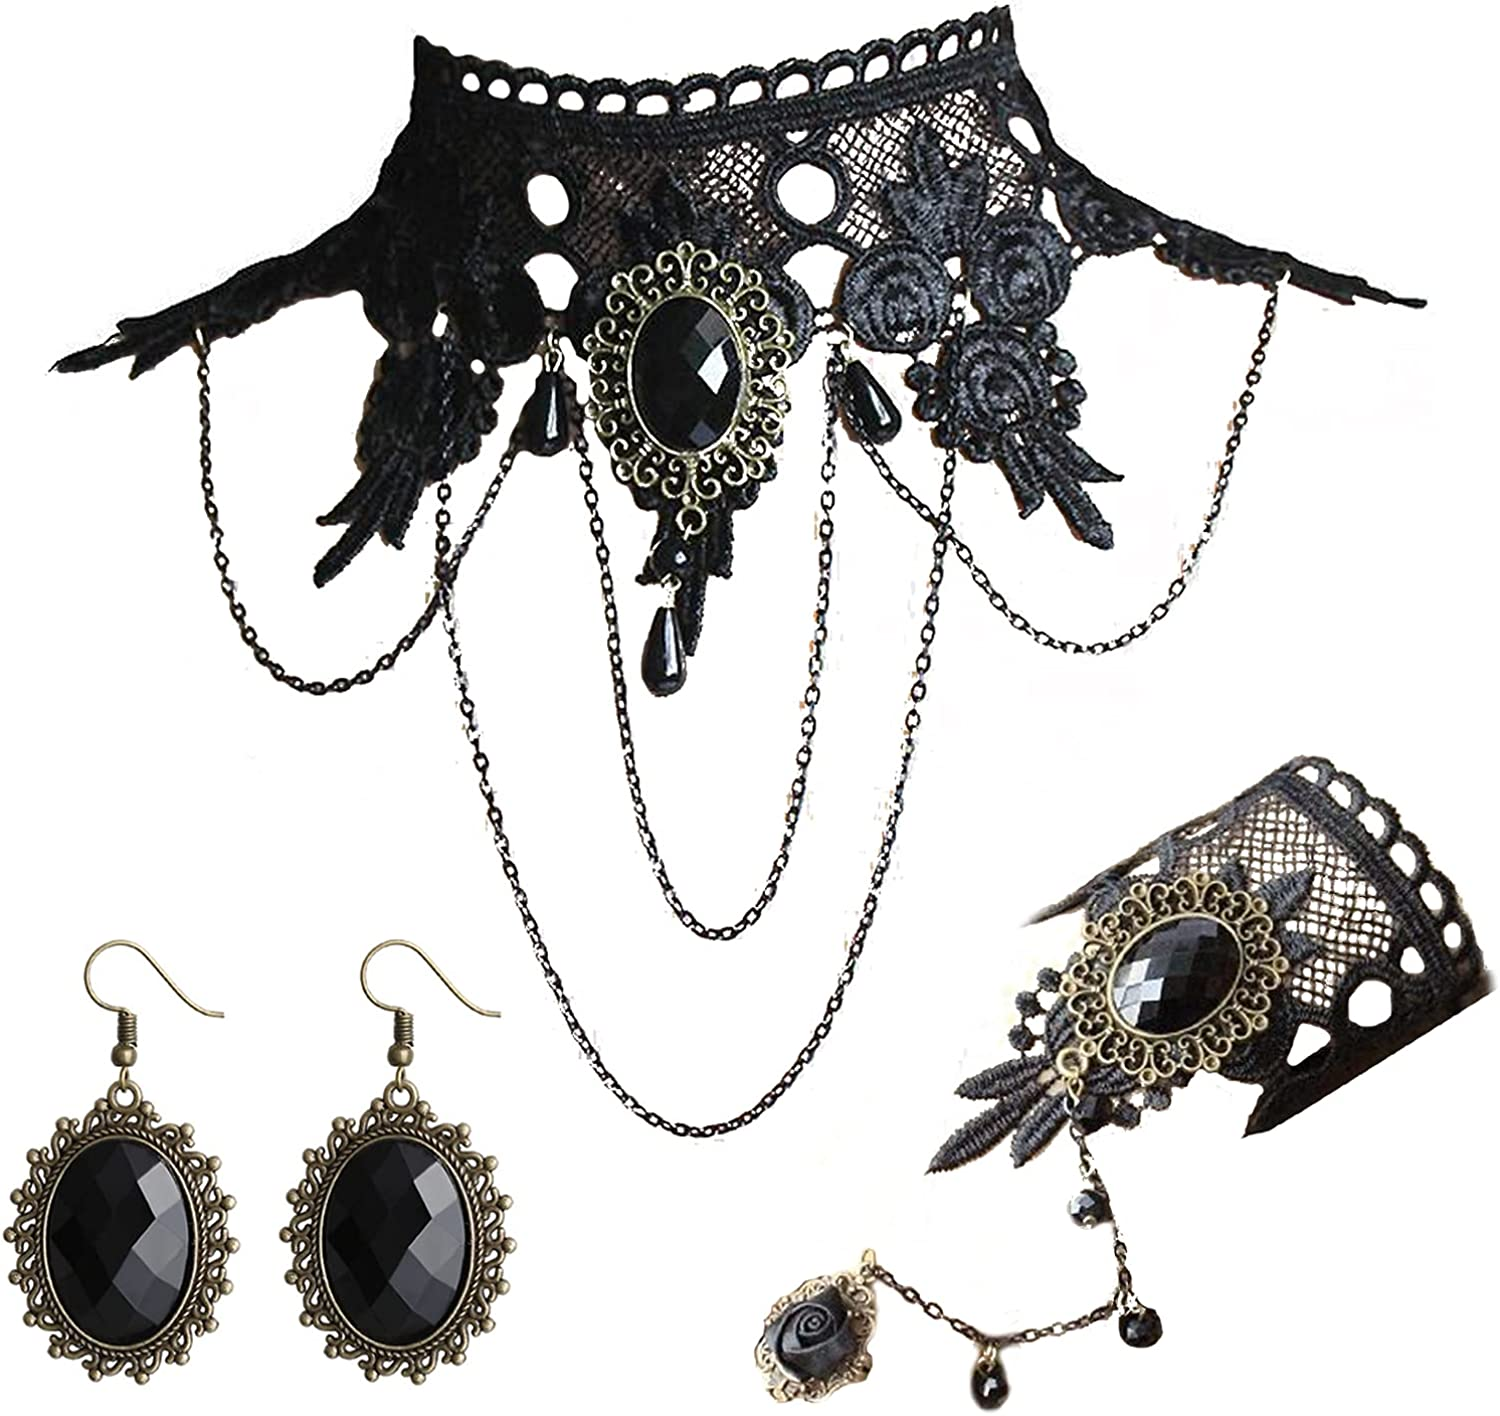 Black Lace Jewelry Set, Choker Necklace Bracelet Earrings, Halloween Gothic Costume Jewelry Set, Vintage Lacery Crystal Pendant, Cameo Crystal Dangle Earrings, Rose Voile Lace Bracelet with Ring